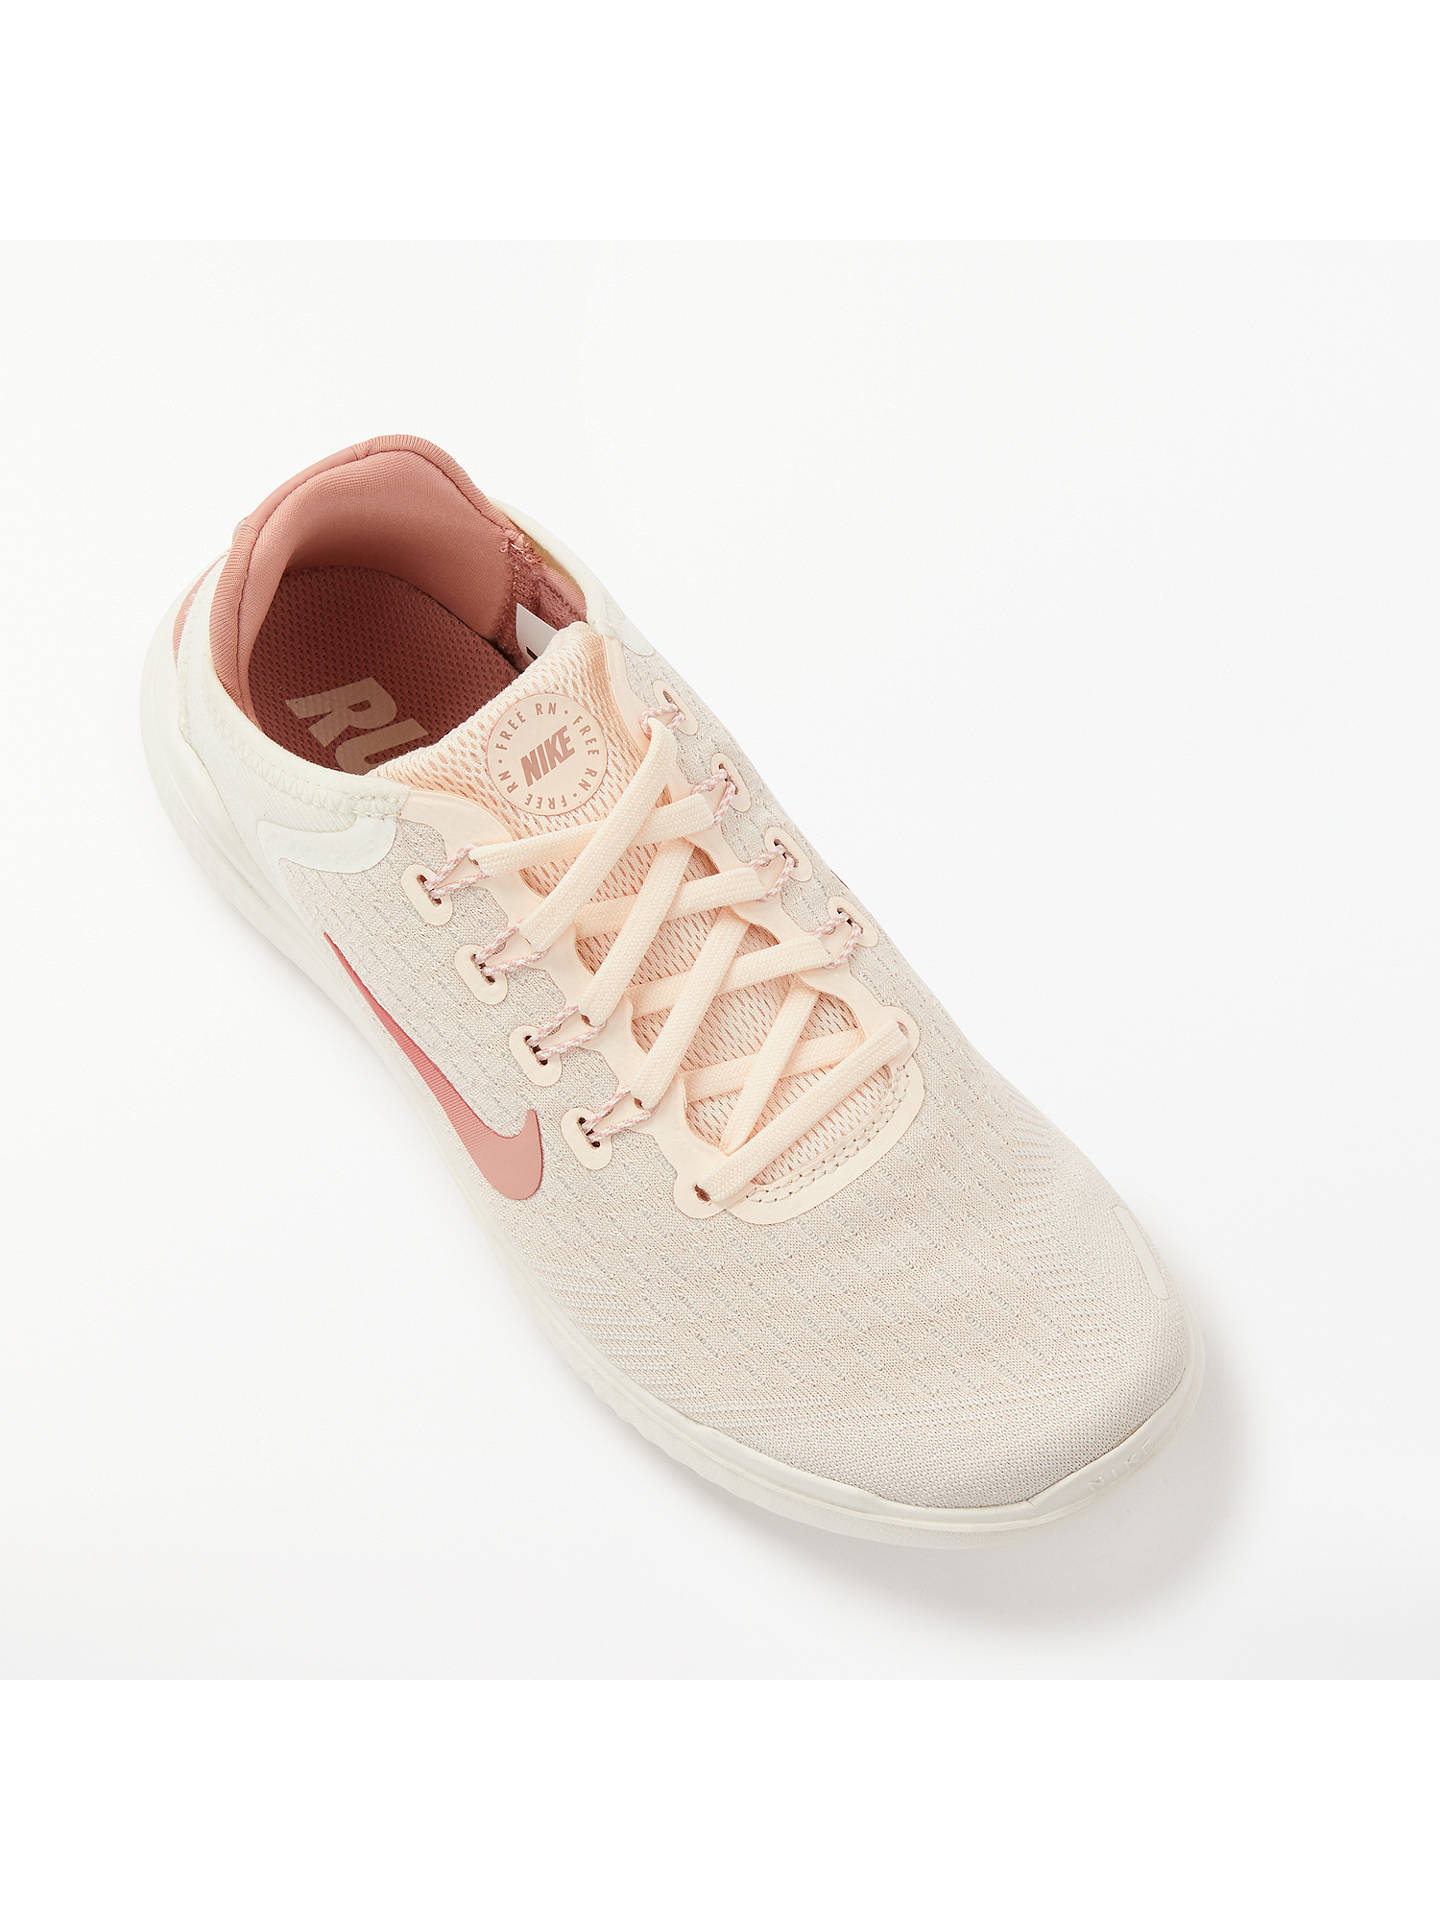 big sale bf13d e3d36 Nike Free RN 2018 Women's Running Shoes, Guava Ice/Rust Pink ...